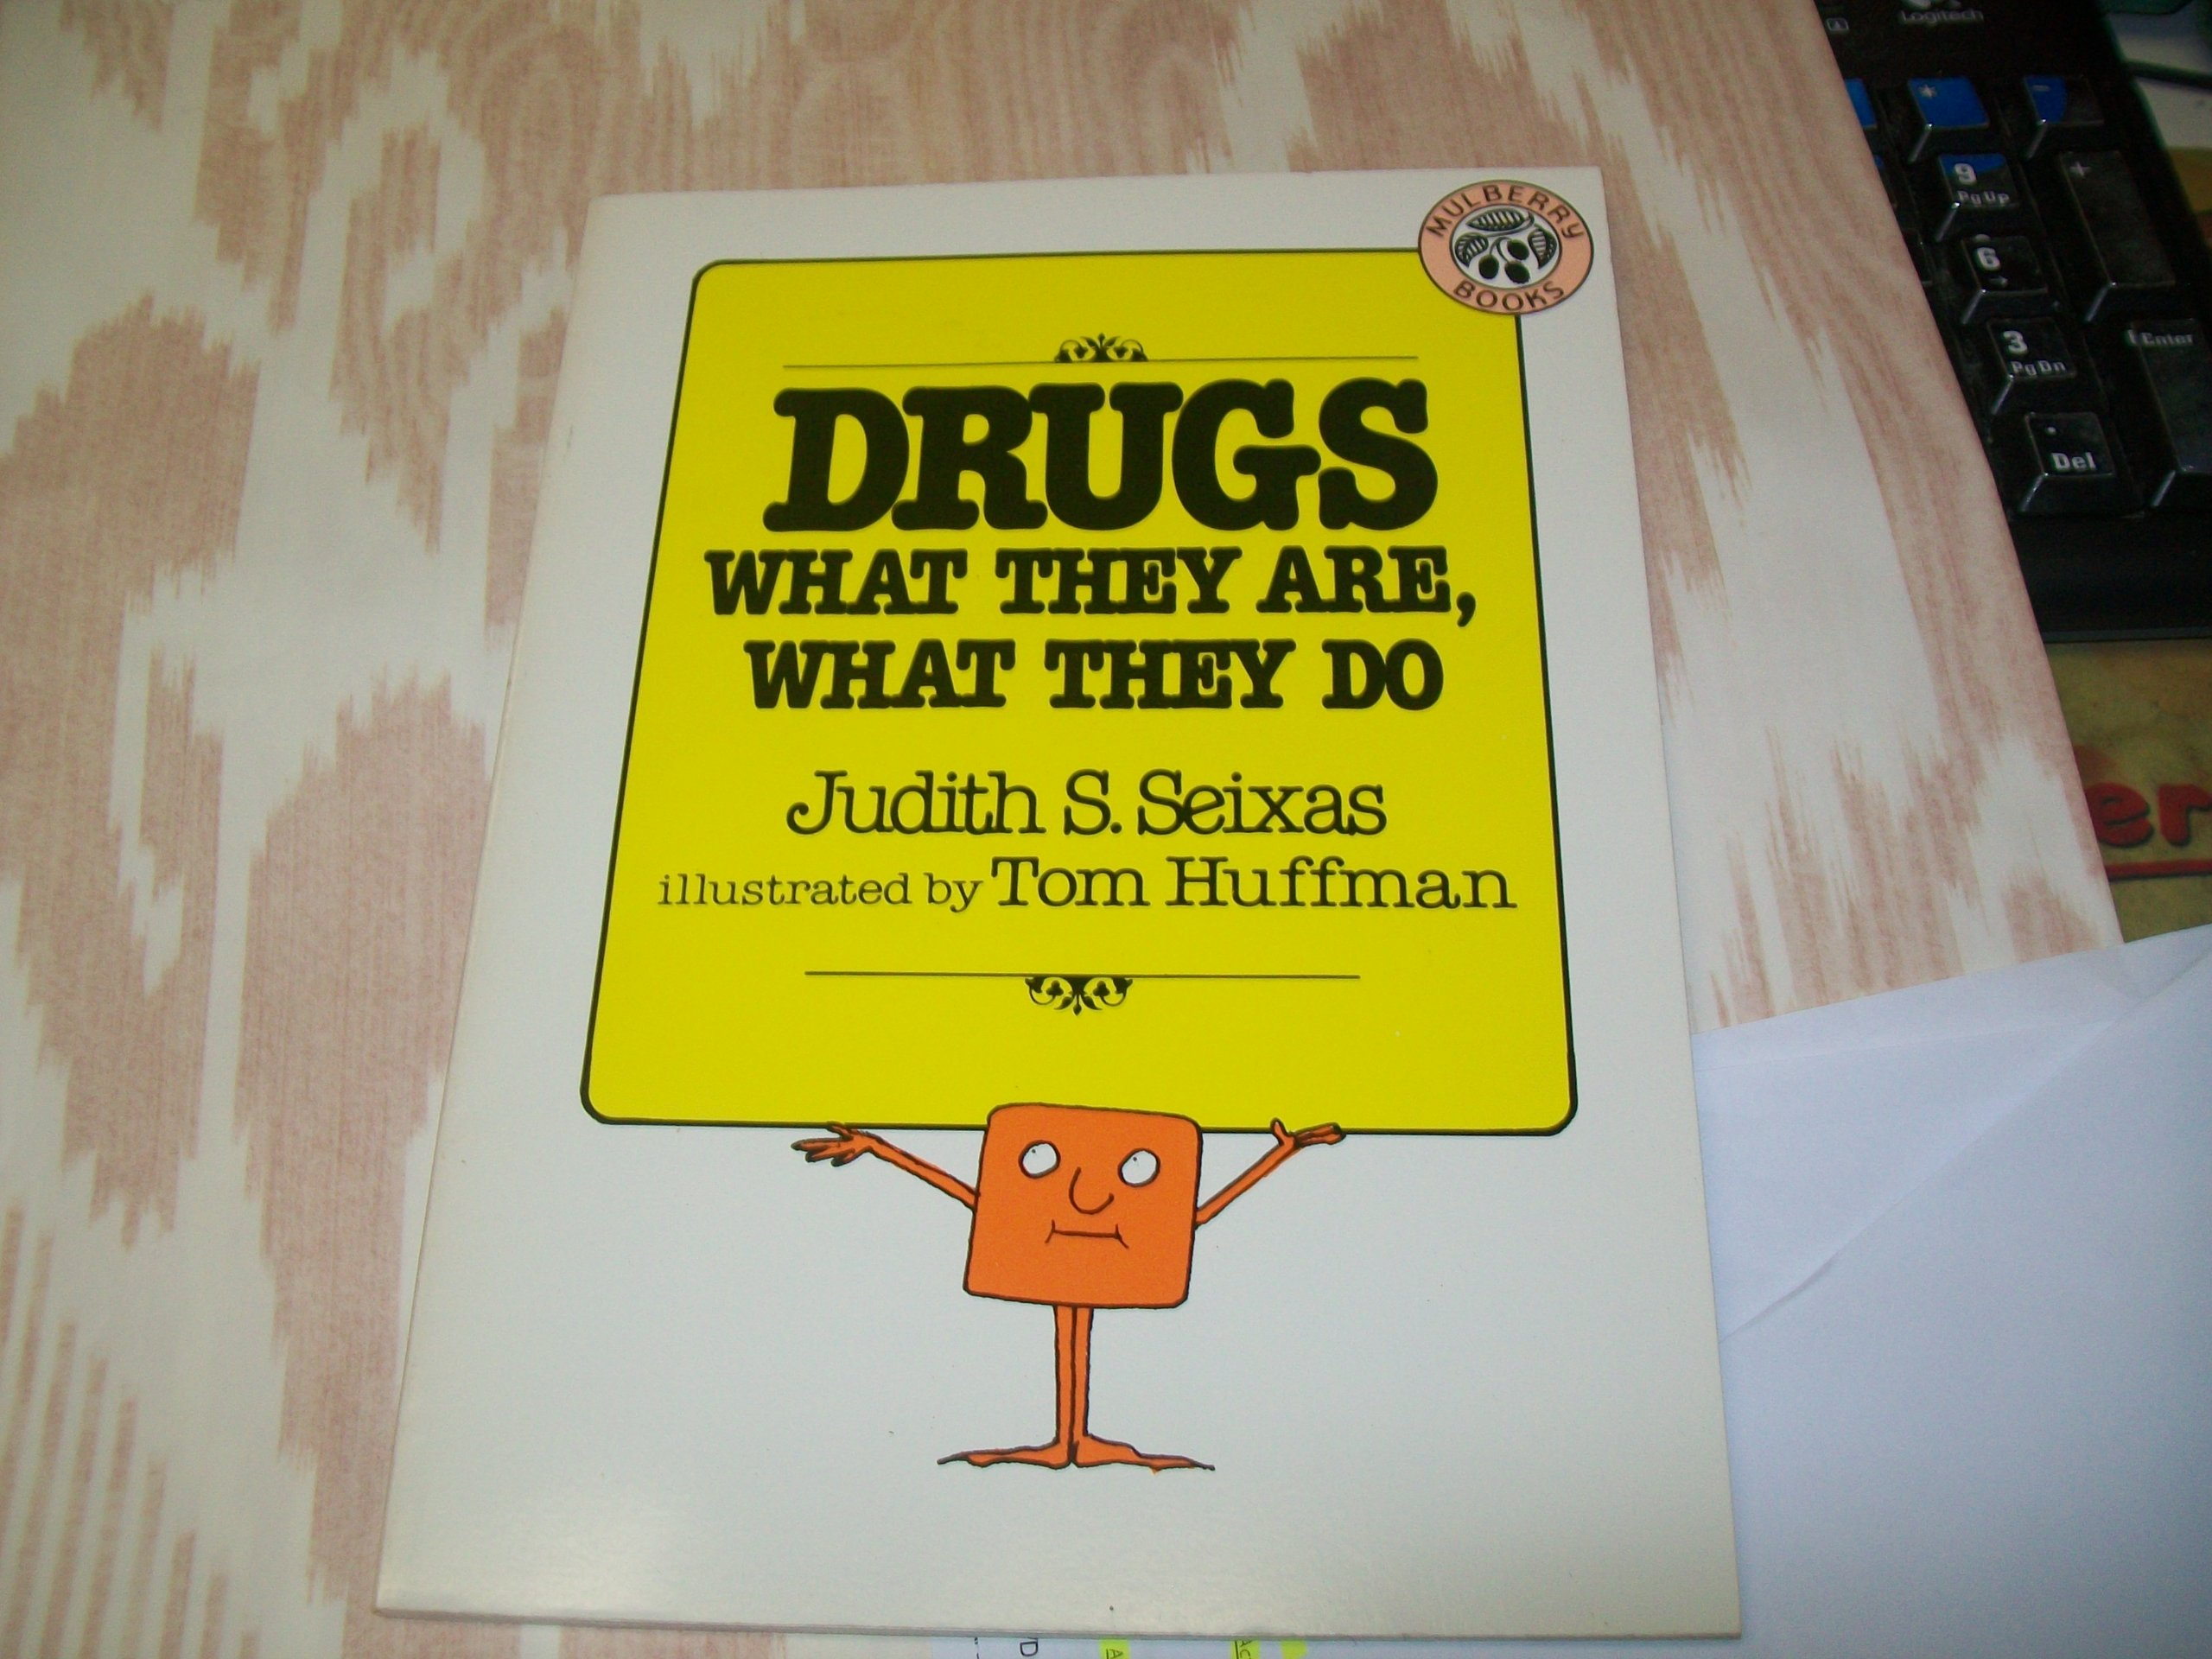 Drugs: What They Are, What They Do